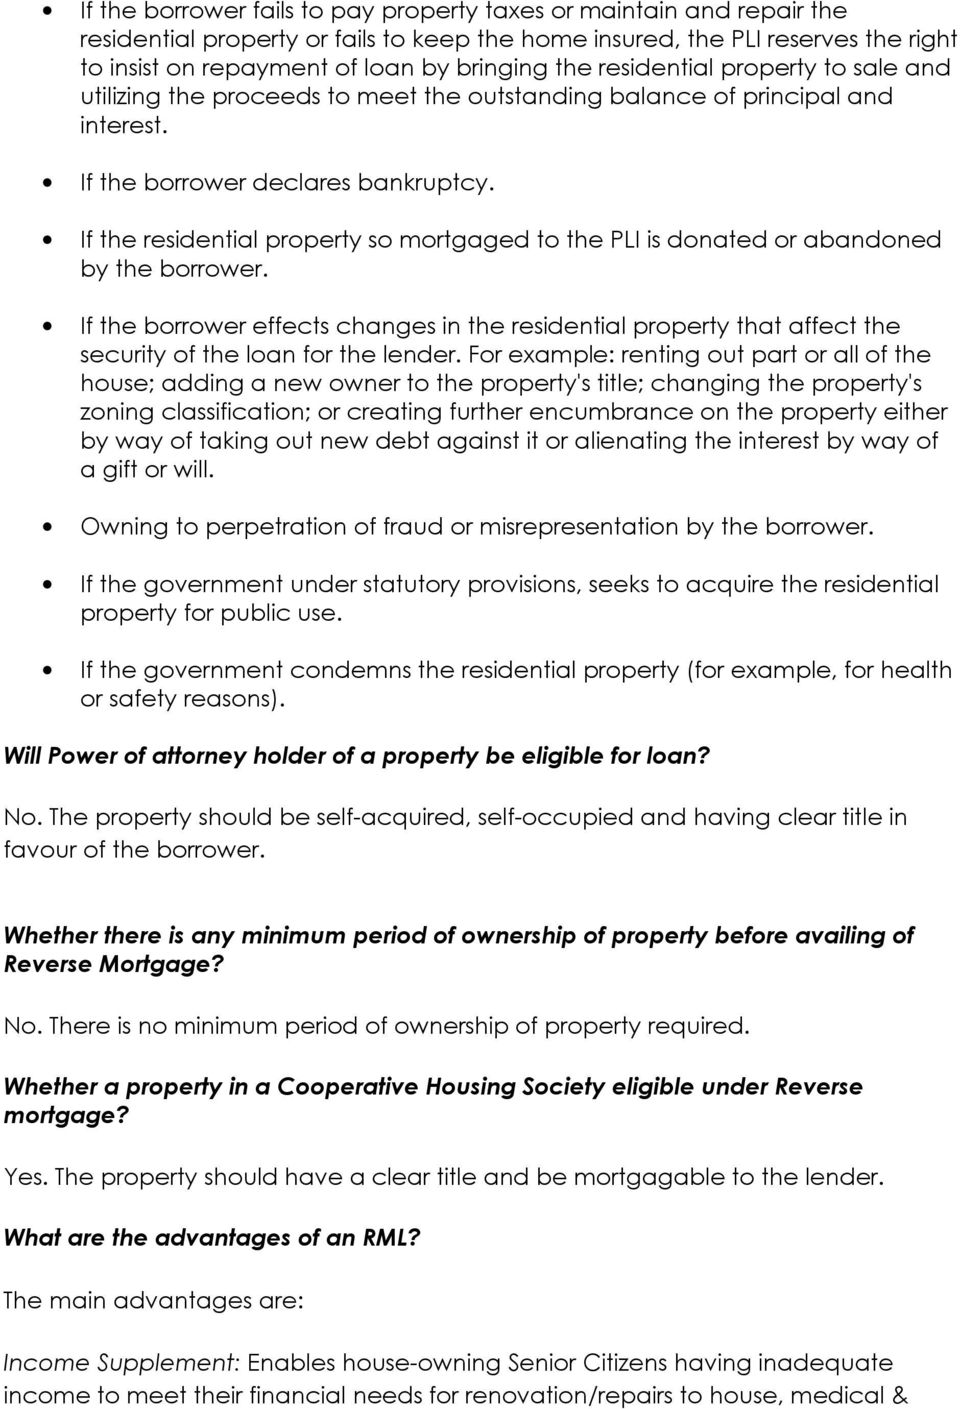 If the residential property so mortgaged to the PLI is donated or abandoned by the borrower.